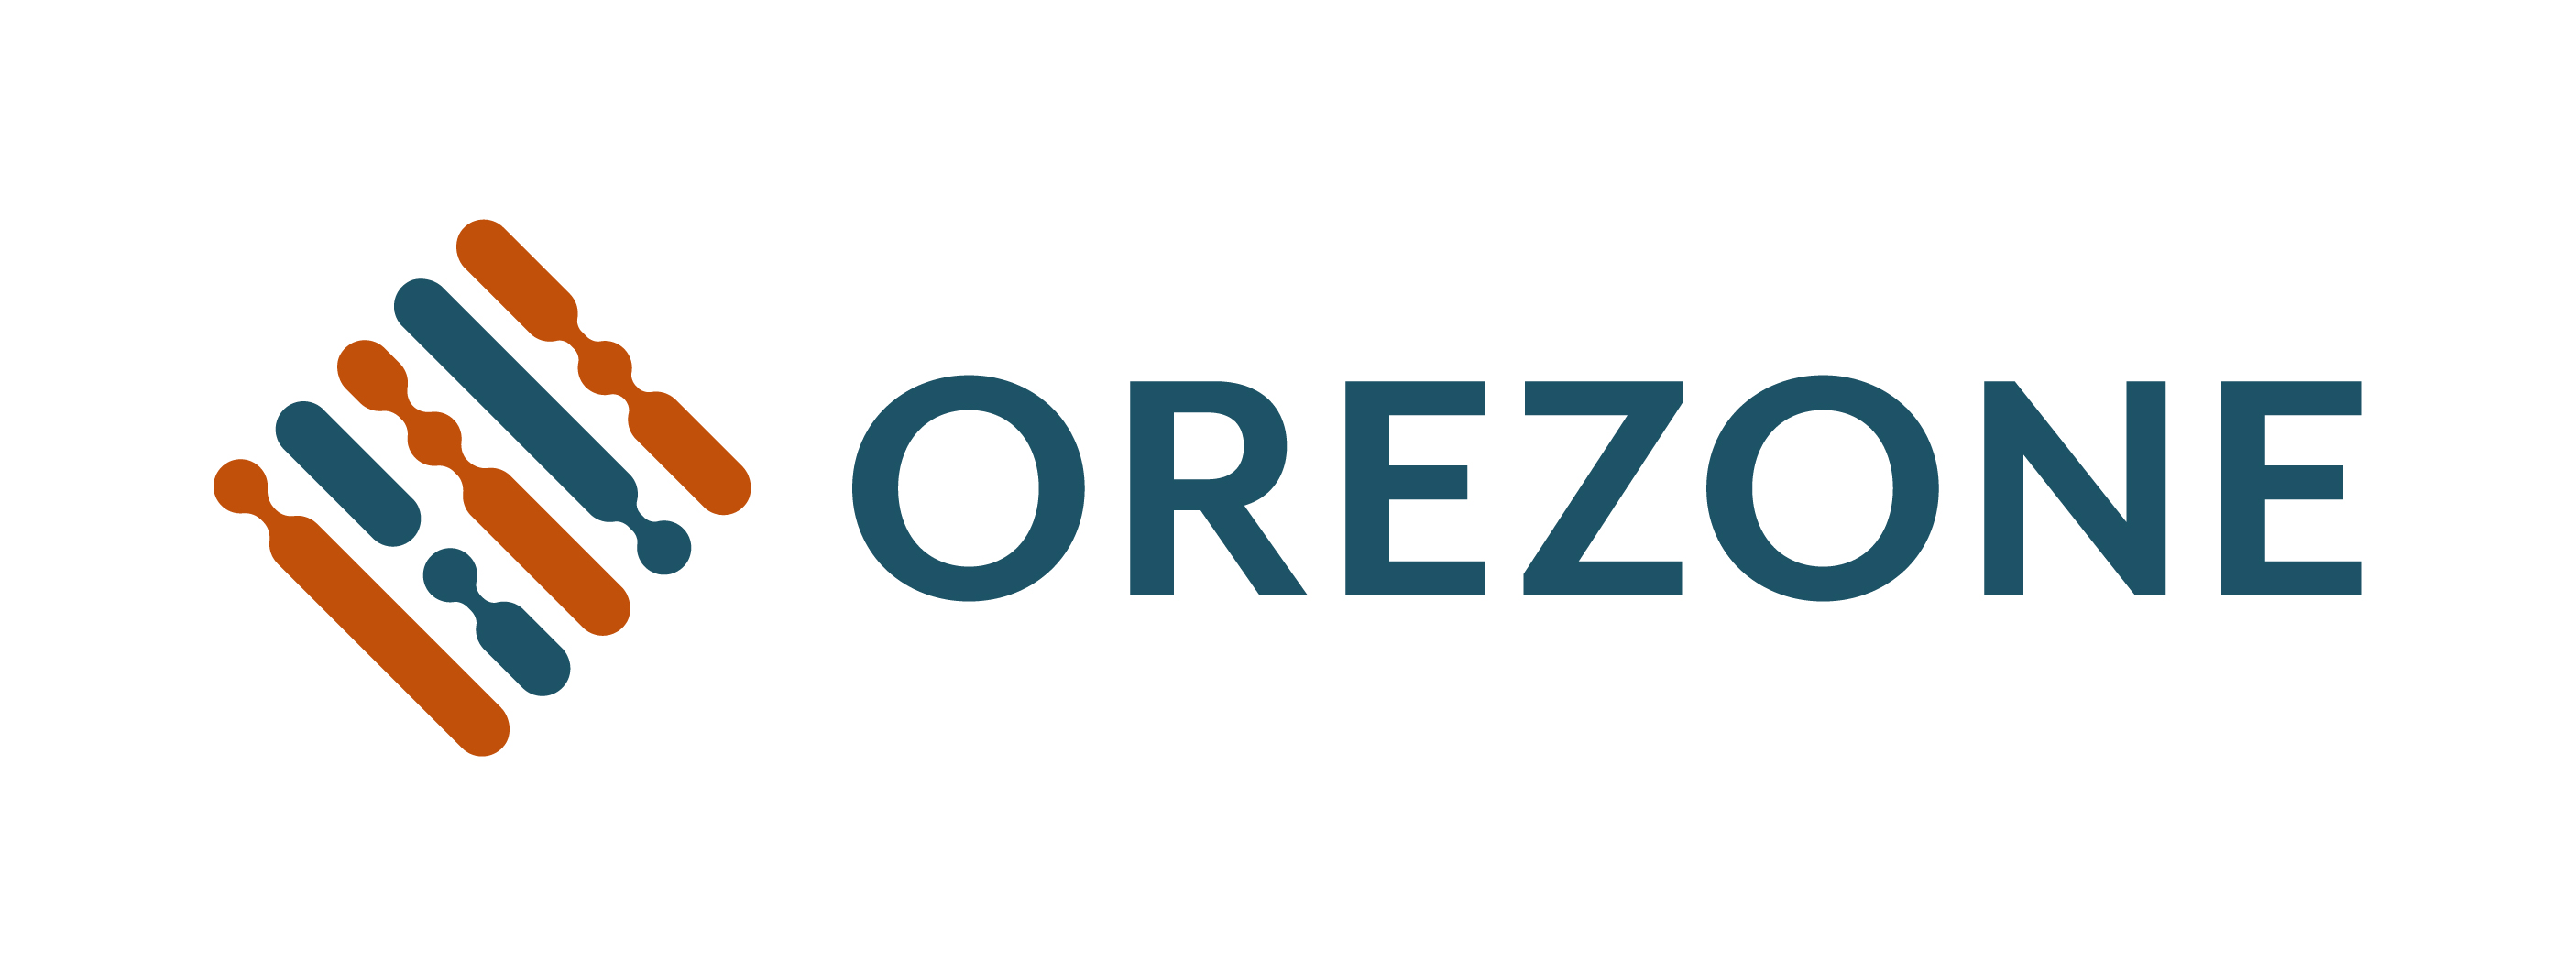 Orezone Sells 50% Silver Production From Bombore for US$7